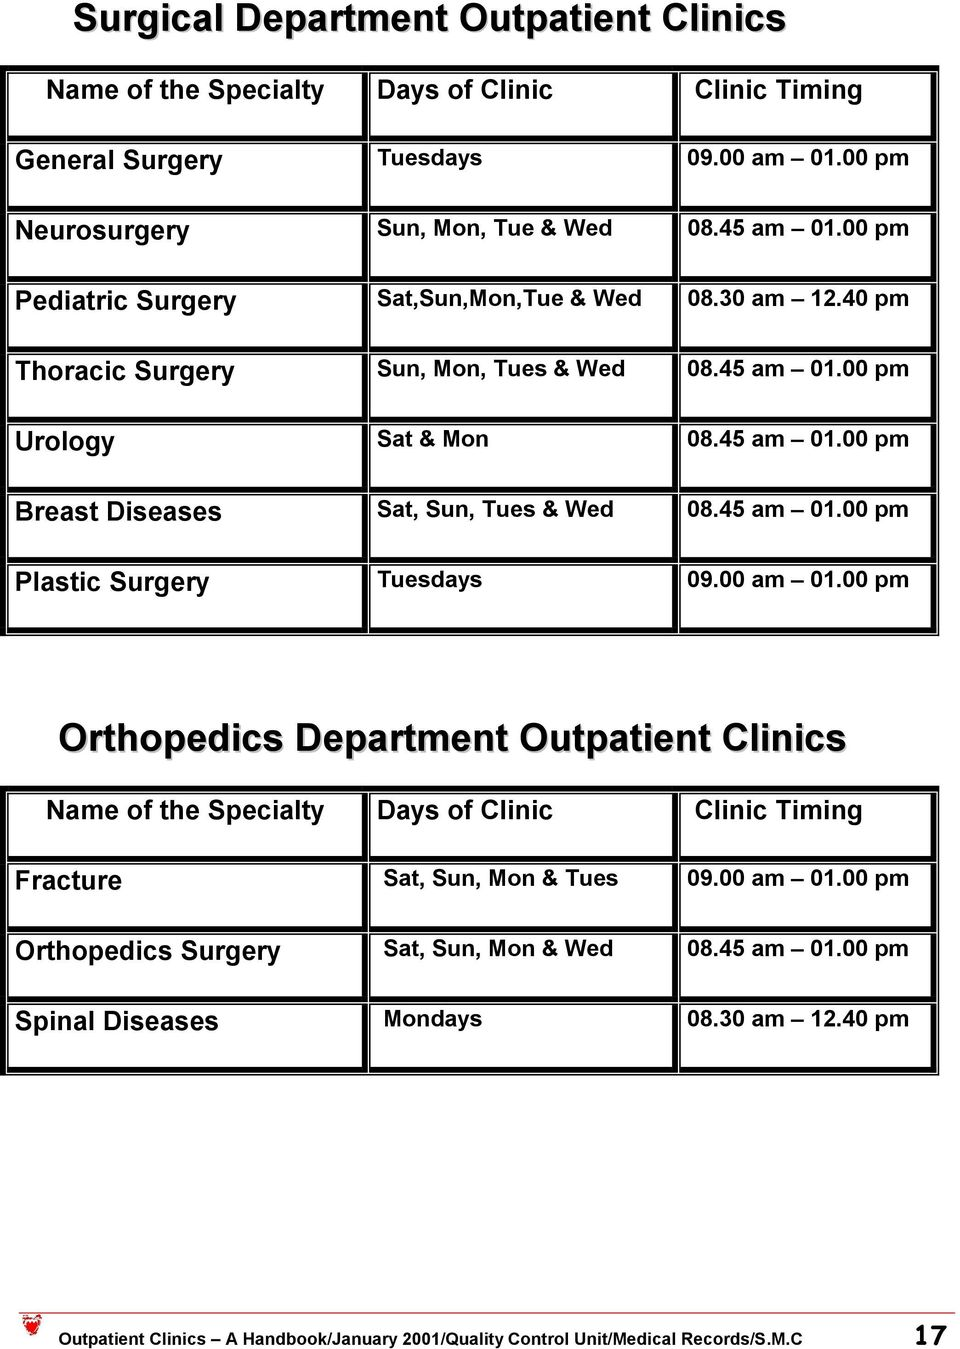 45 am 01.00 pm Plastic Surgery Tuesdays 09.00 am 01.00 pm Orthopedics Department Outpatient Clinics Name of the Specialty Days of Clinic Clinic Timing Fracture Sat, Sun, Mon & Tues 09.